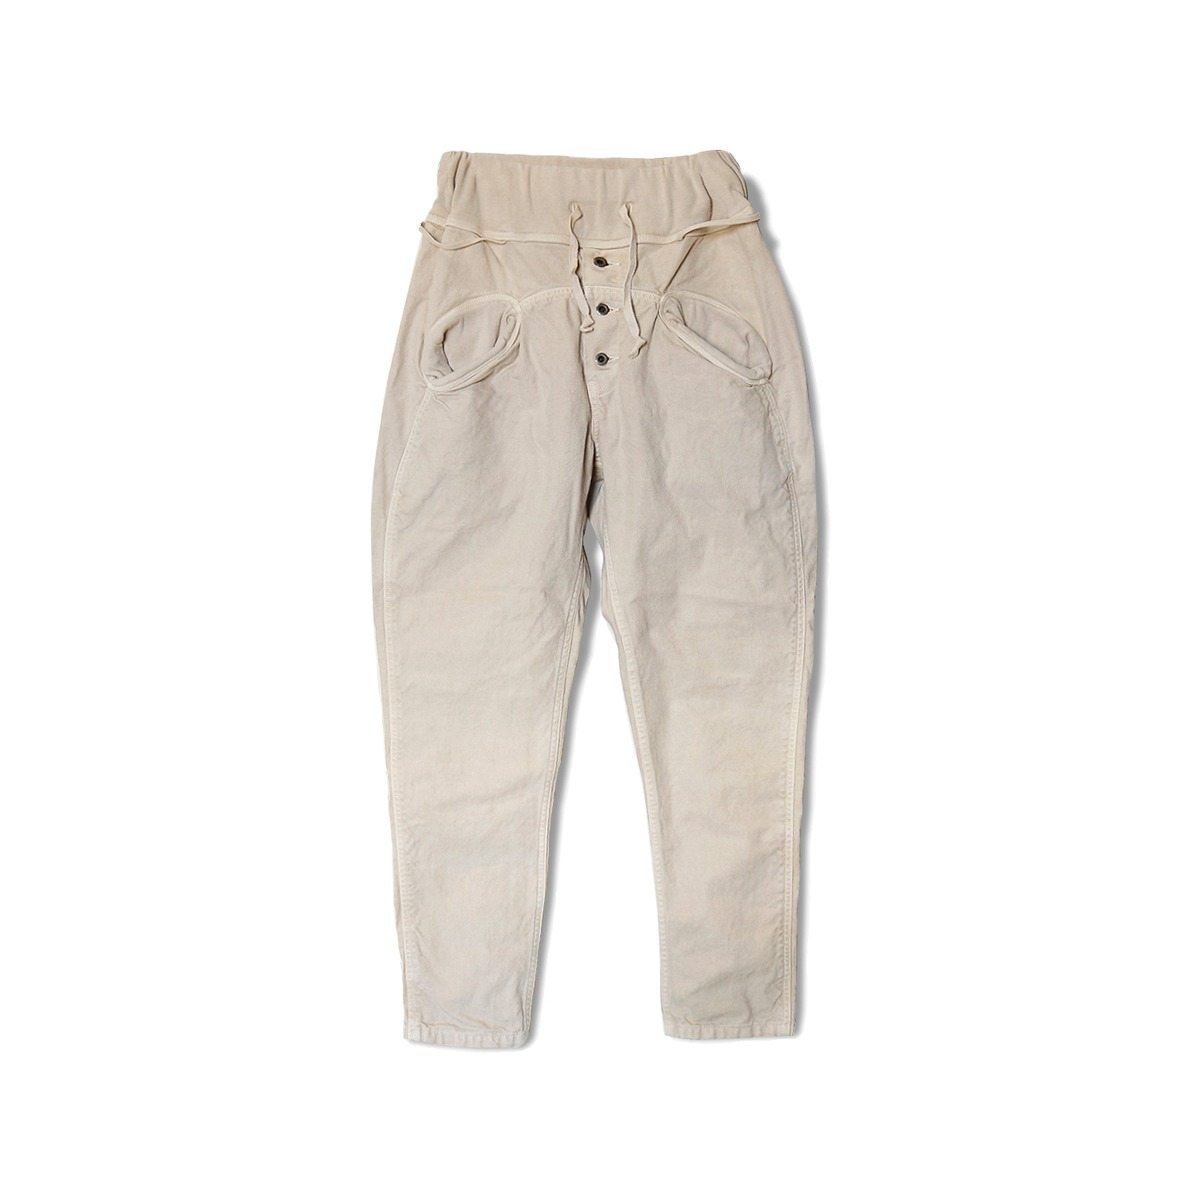 [KAPITAL] CANVAS SAROUEL NOUVELLE PANTS 'BEIGE'